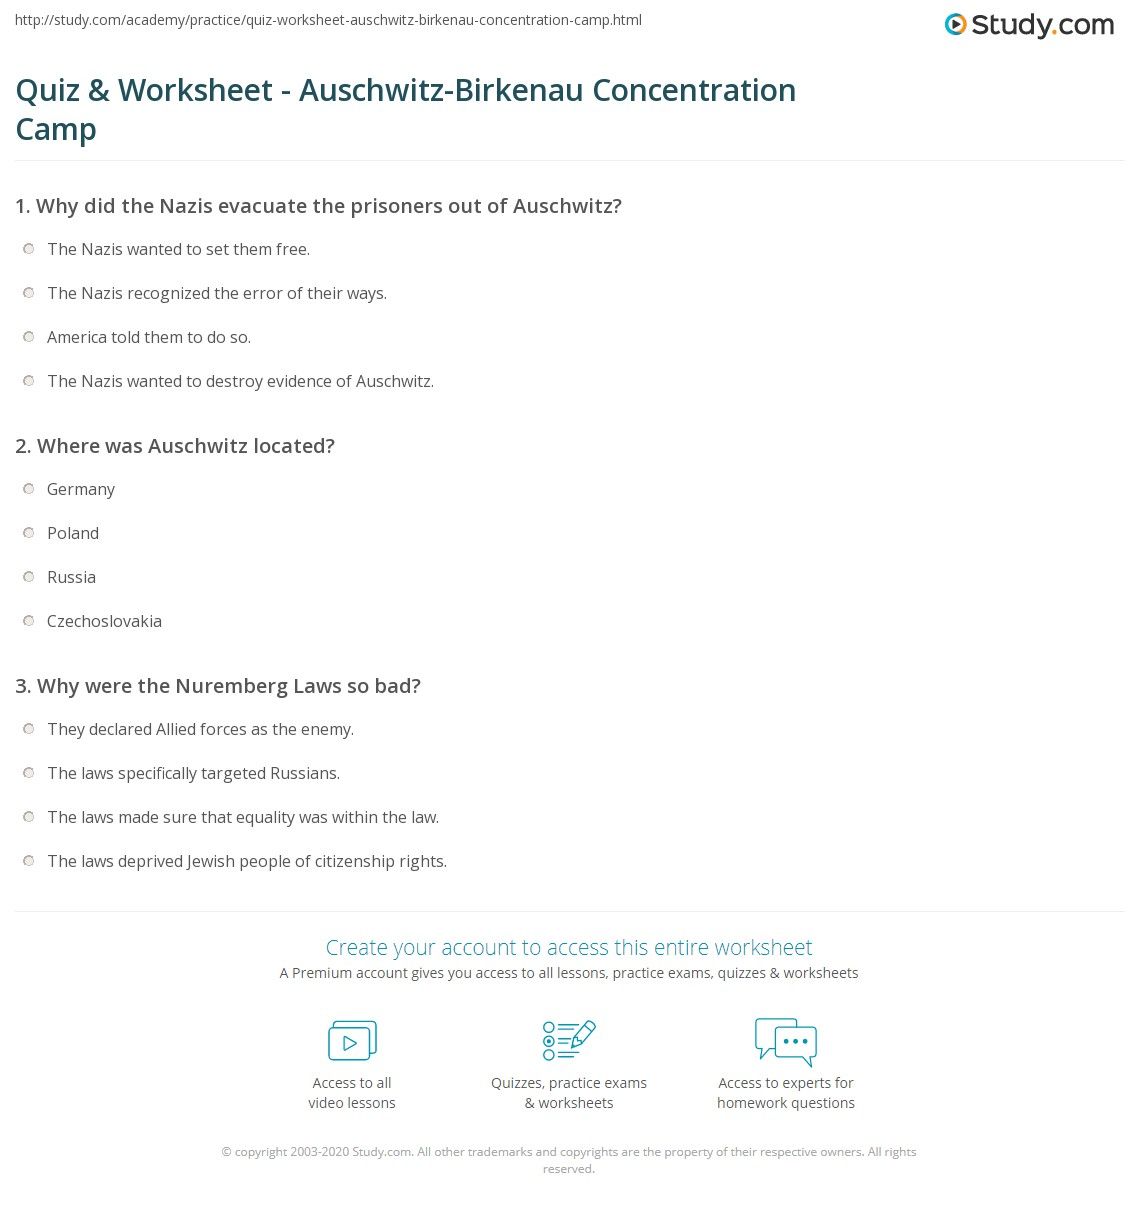 quiz worksheet auschwitz birkenau concentration camp com print auschwitz birkenau concentration camp facts liberation worksheet